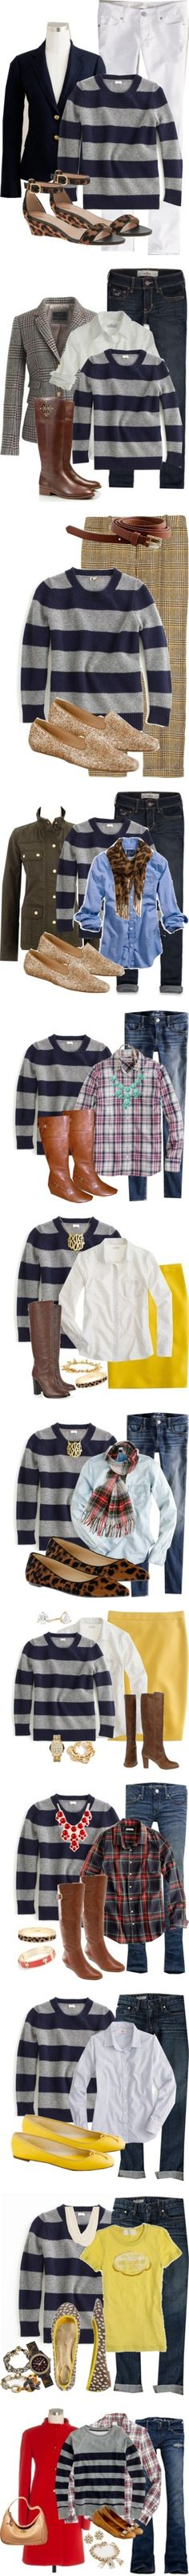 Blue/Gray Stripe Sweater by my4boys on Polyvore featuring мода, American Eagle Outfitters, J.Crew, Hollister Co., Tory Burch, Old Navy, Stella & Dot, Forever 21, Michael Kors and Steve Madden